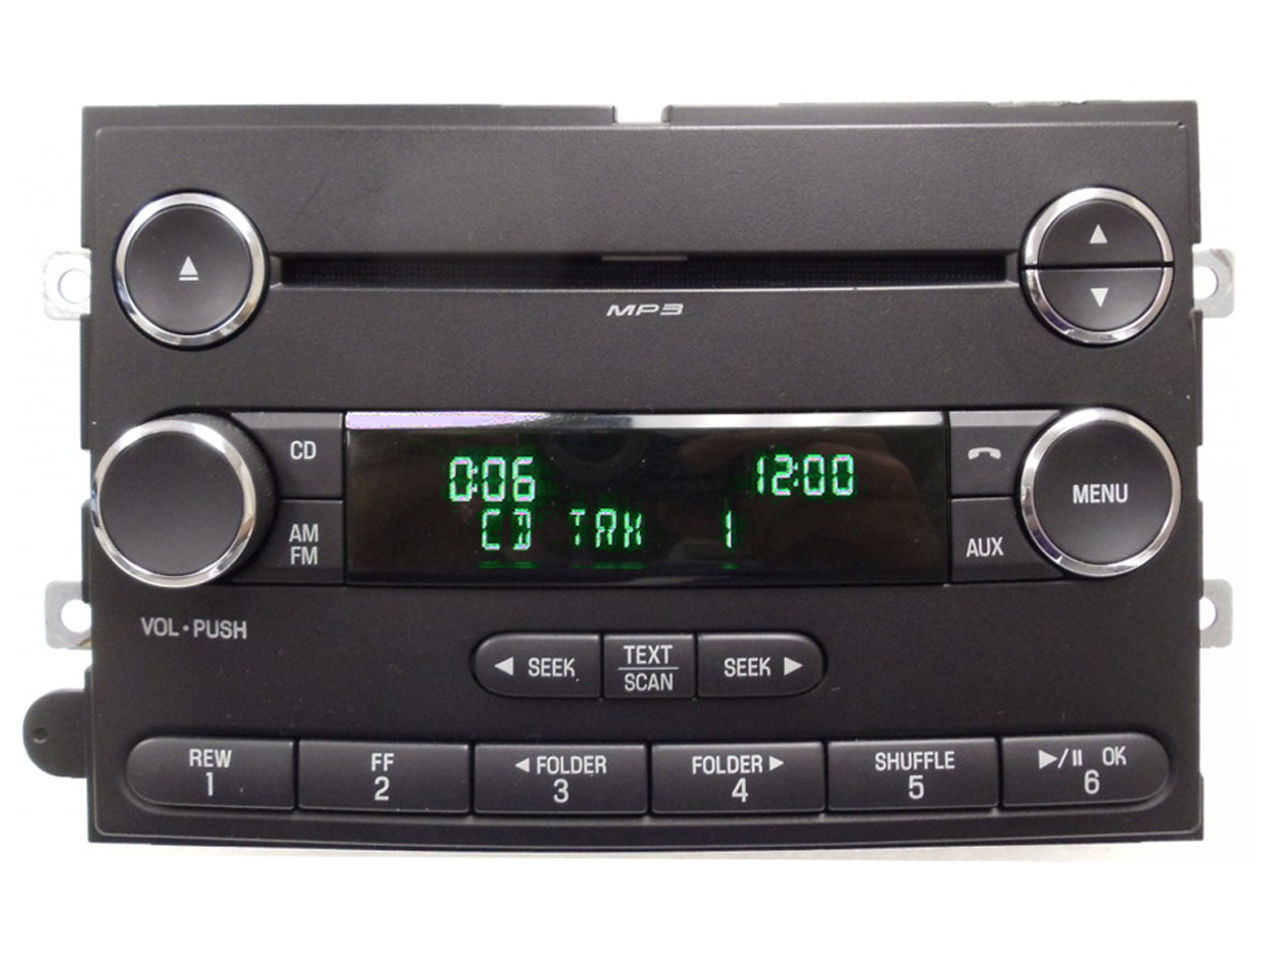 T2eC16ZHJHEFFm9Jh3CBRcY04dsgw60_57__81940.1421871190.1280.1280?c=2 2007 ford explorer radio ebay  at cos-gaming.co